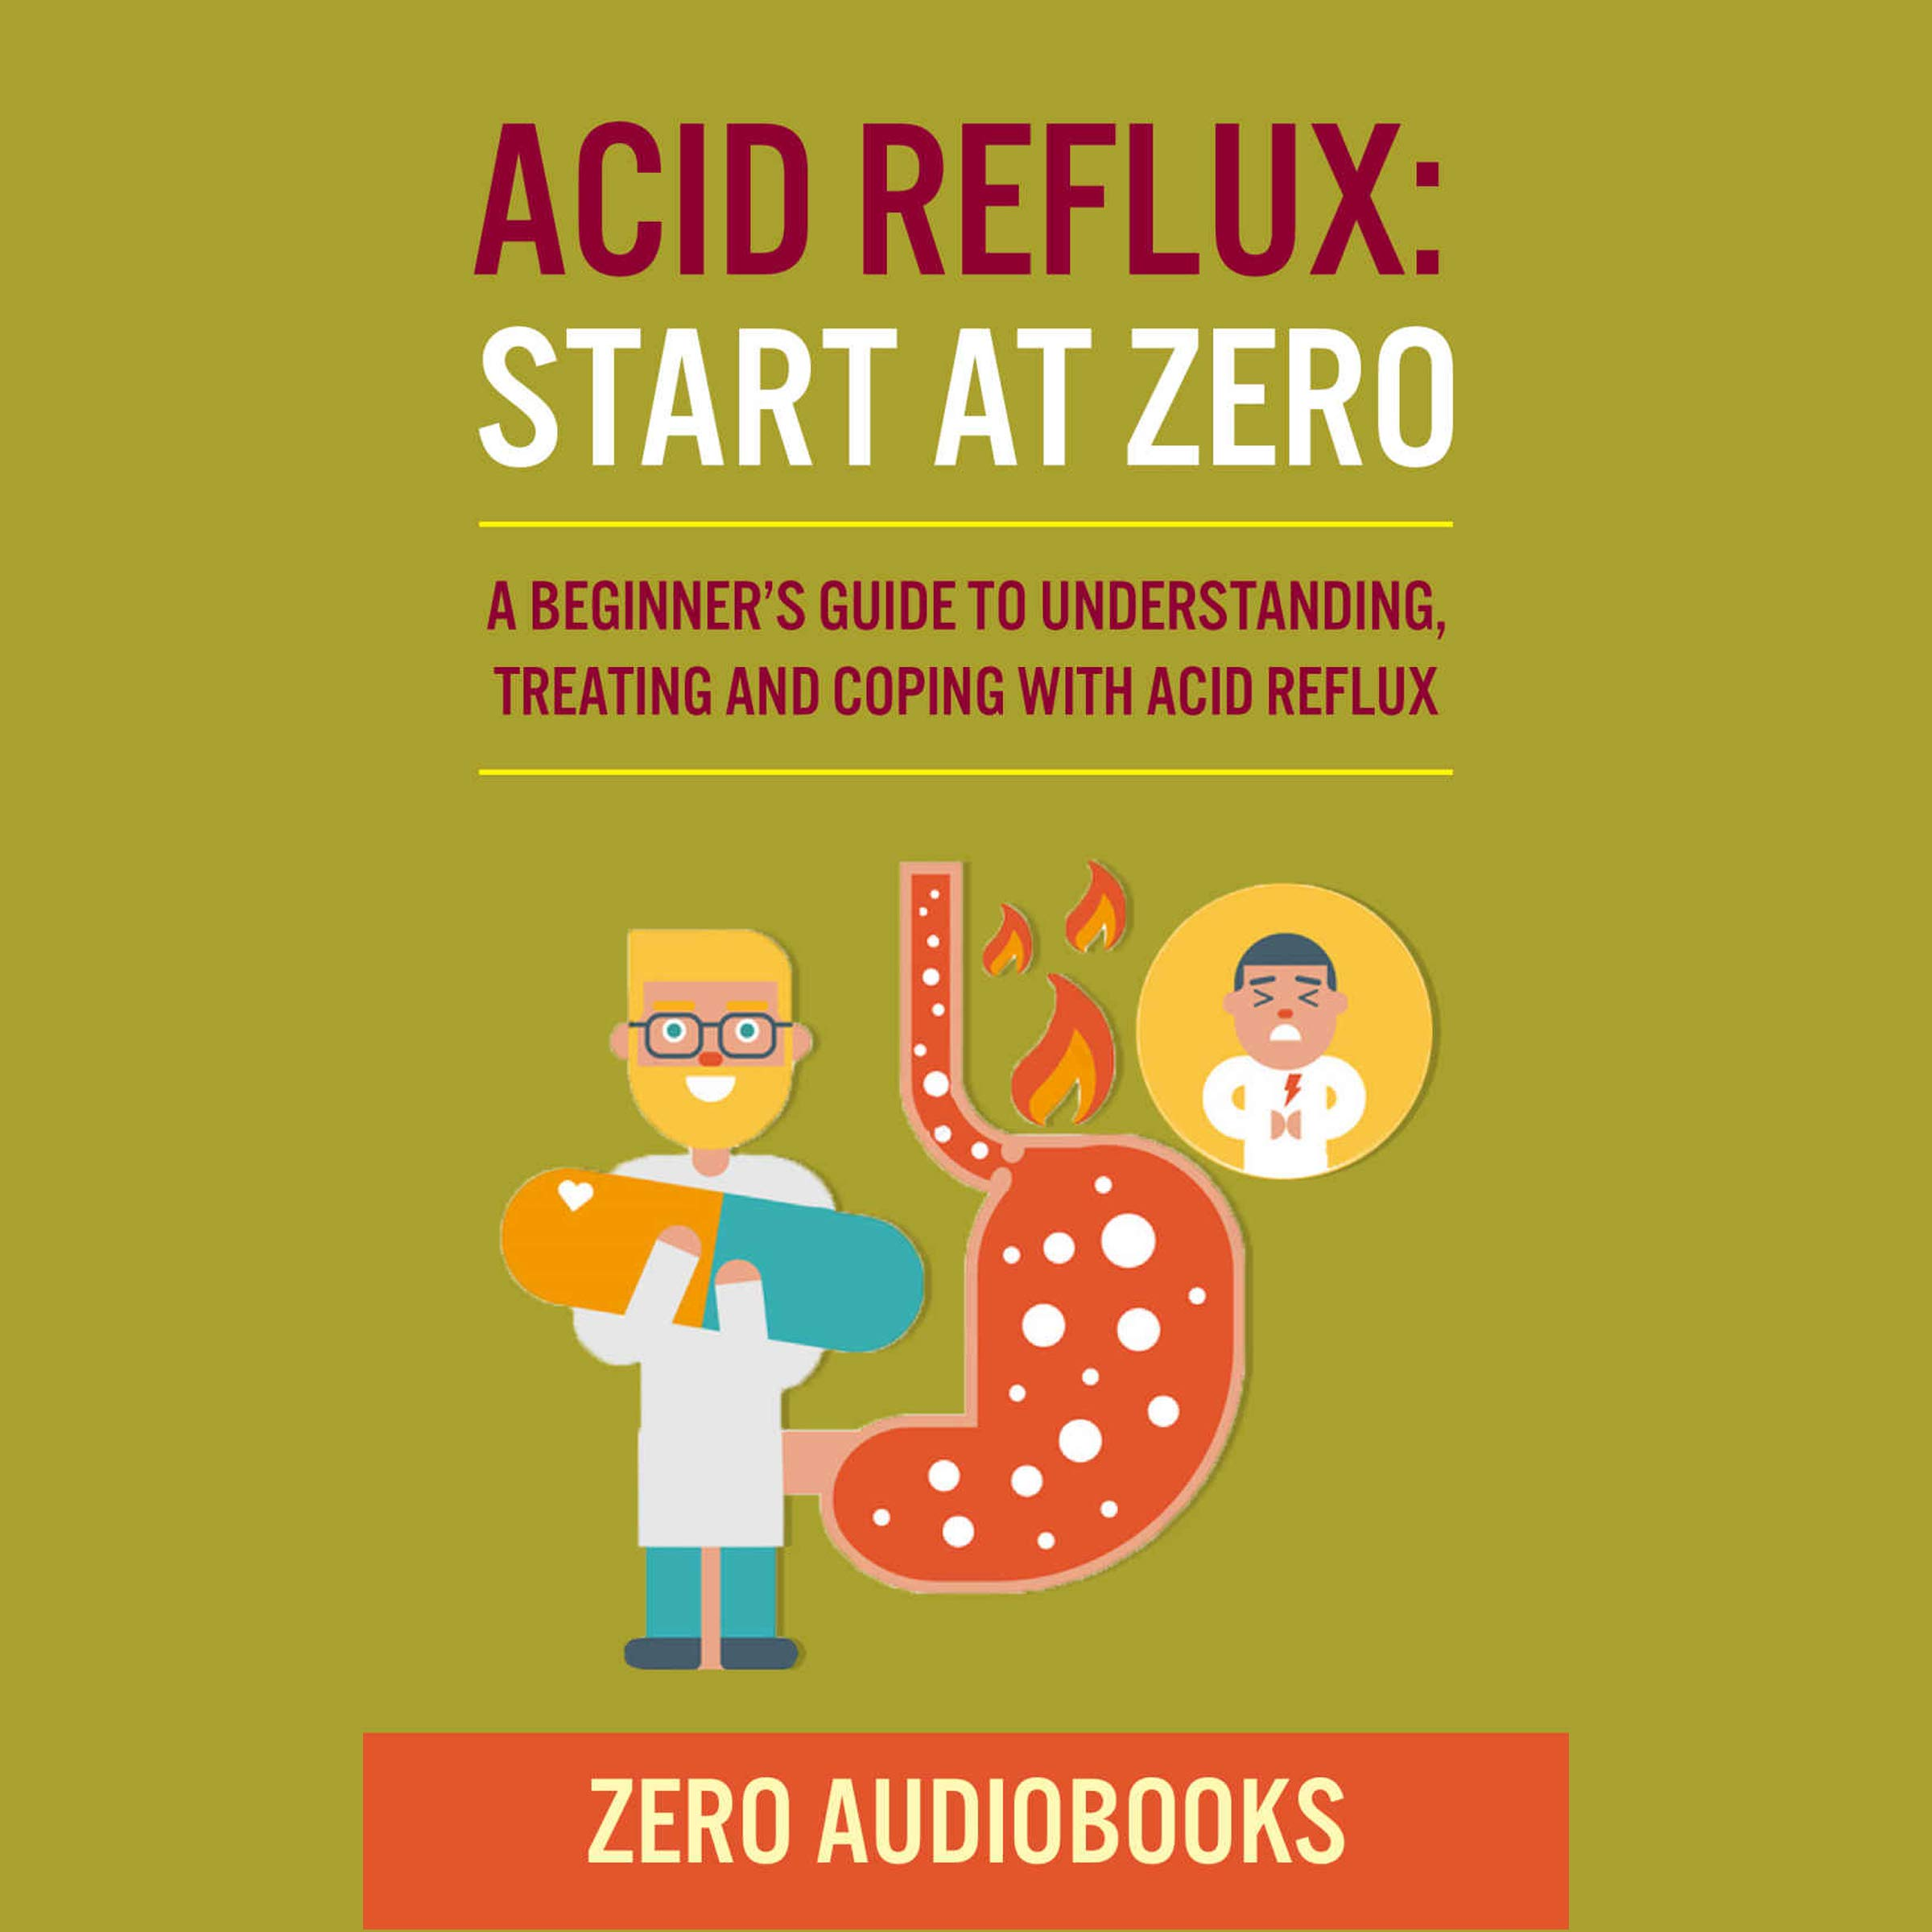 Acid Reflux  Start At Zero  A Beginner's Guide To Understanding Treating And Coping With Acid Reflux